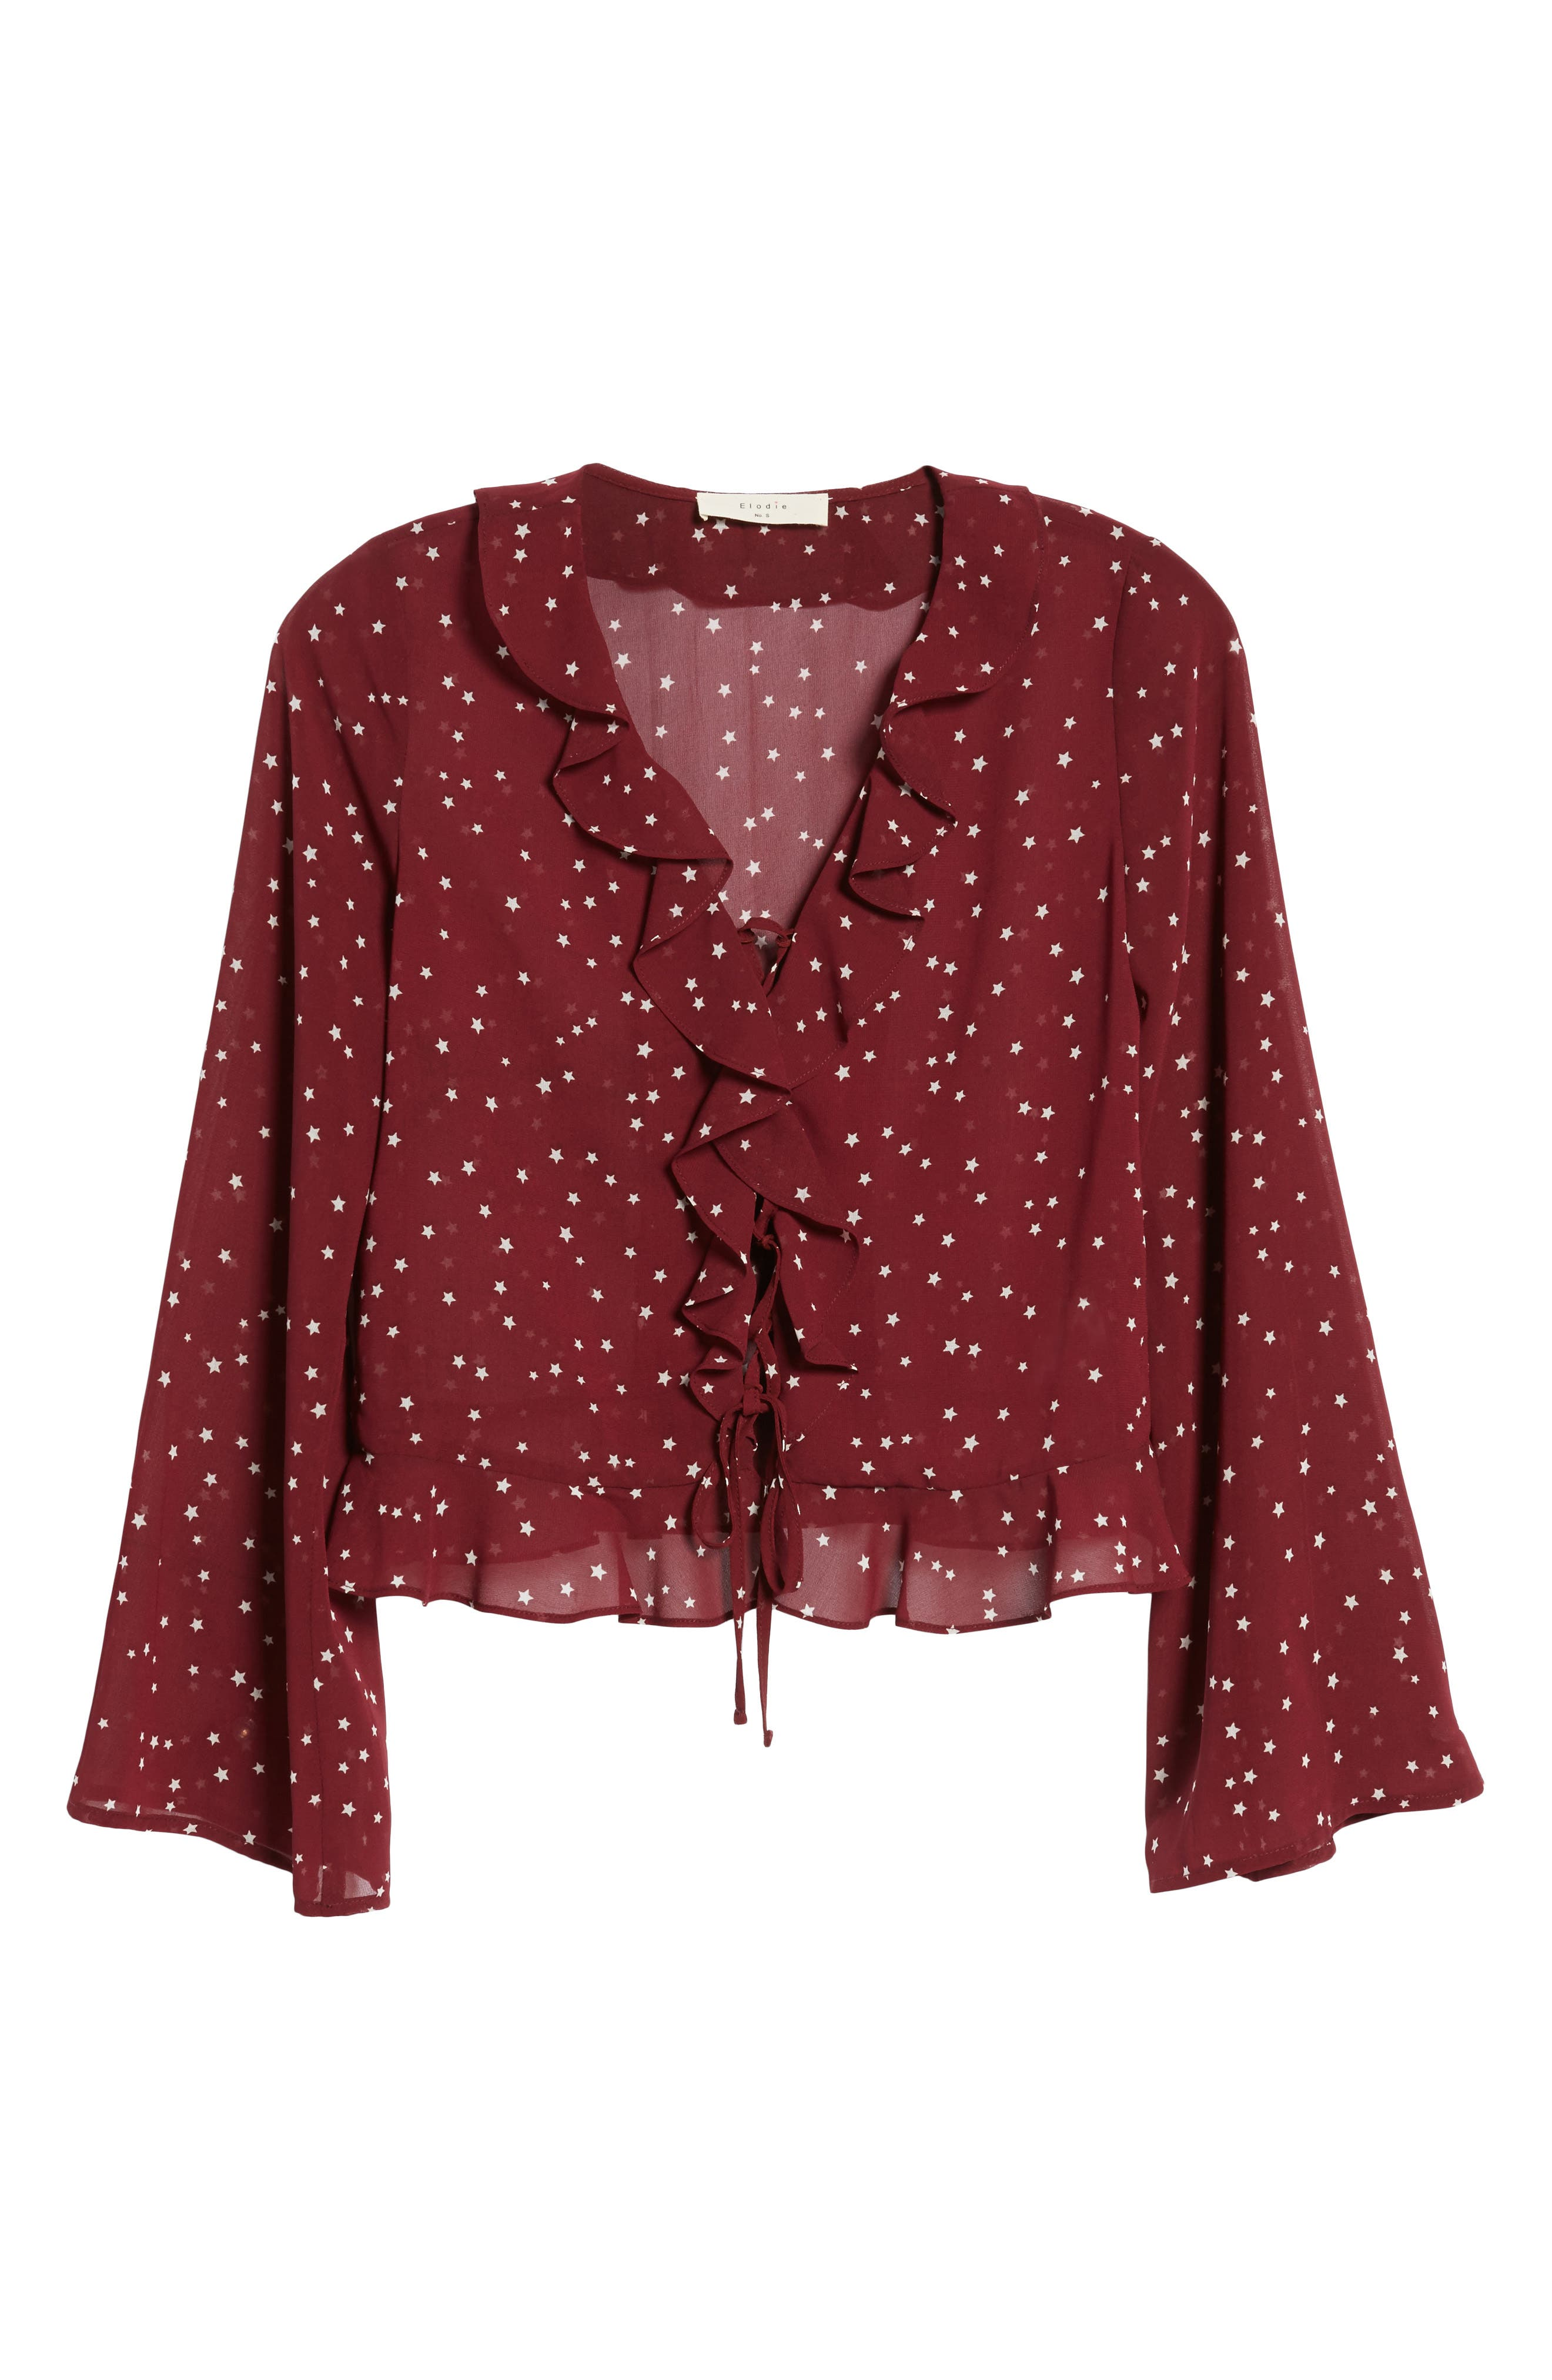 Star Print Ruffle Lace-Up Top,                             Alternate thumbnail 6, color,                             930